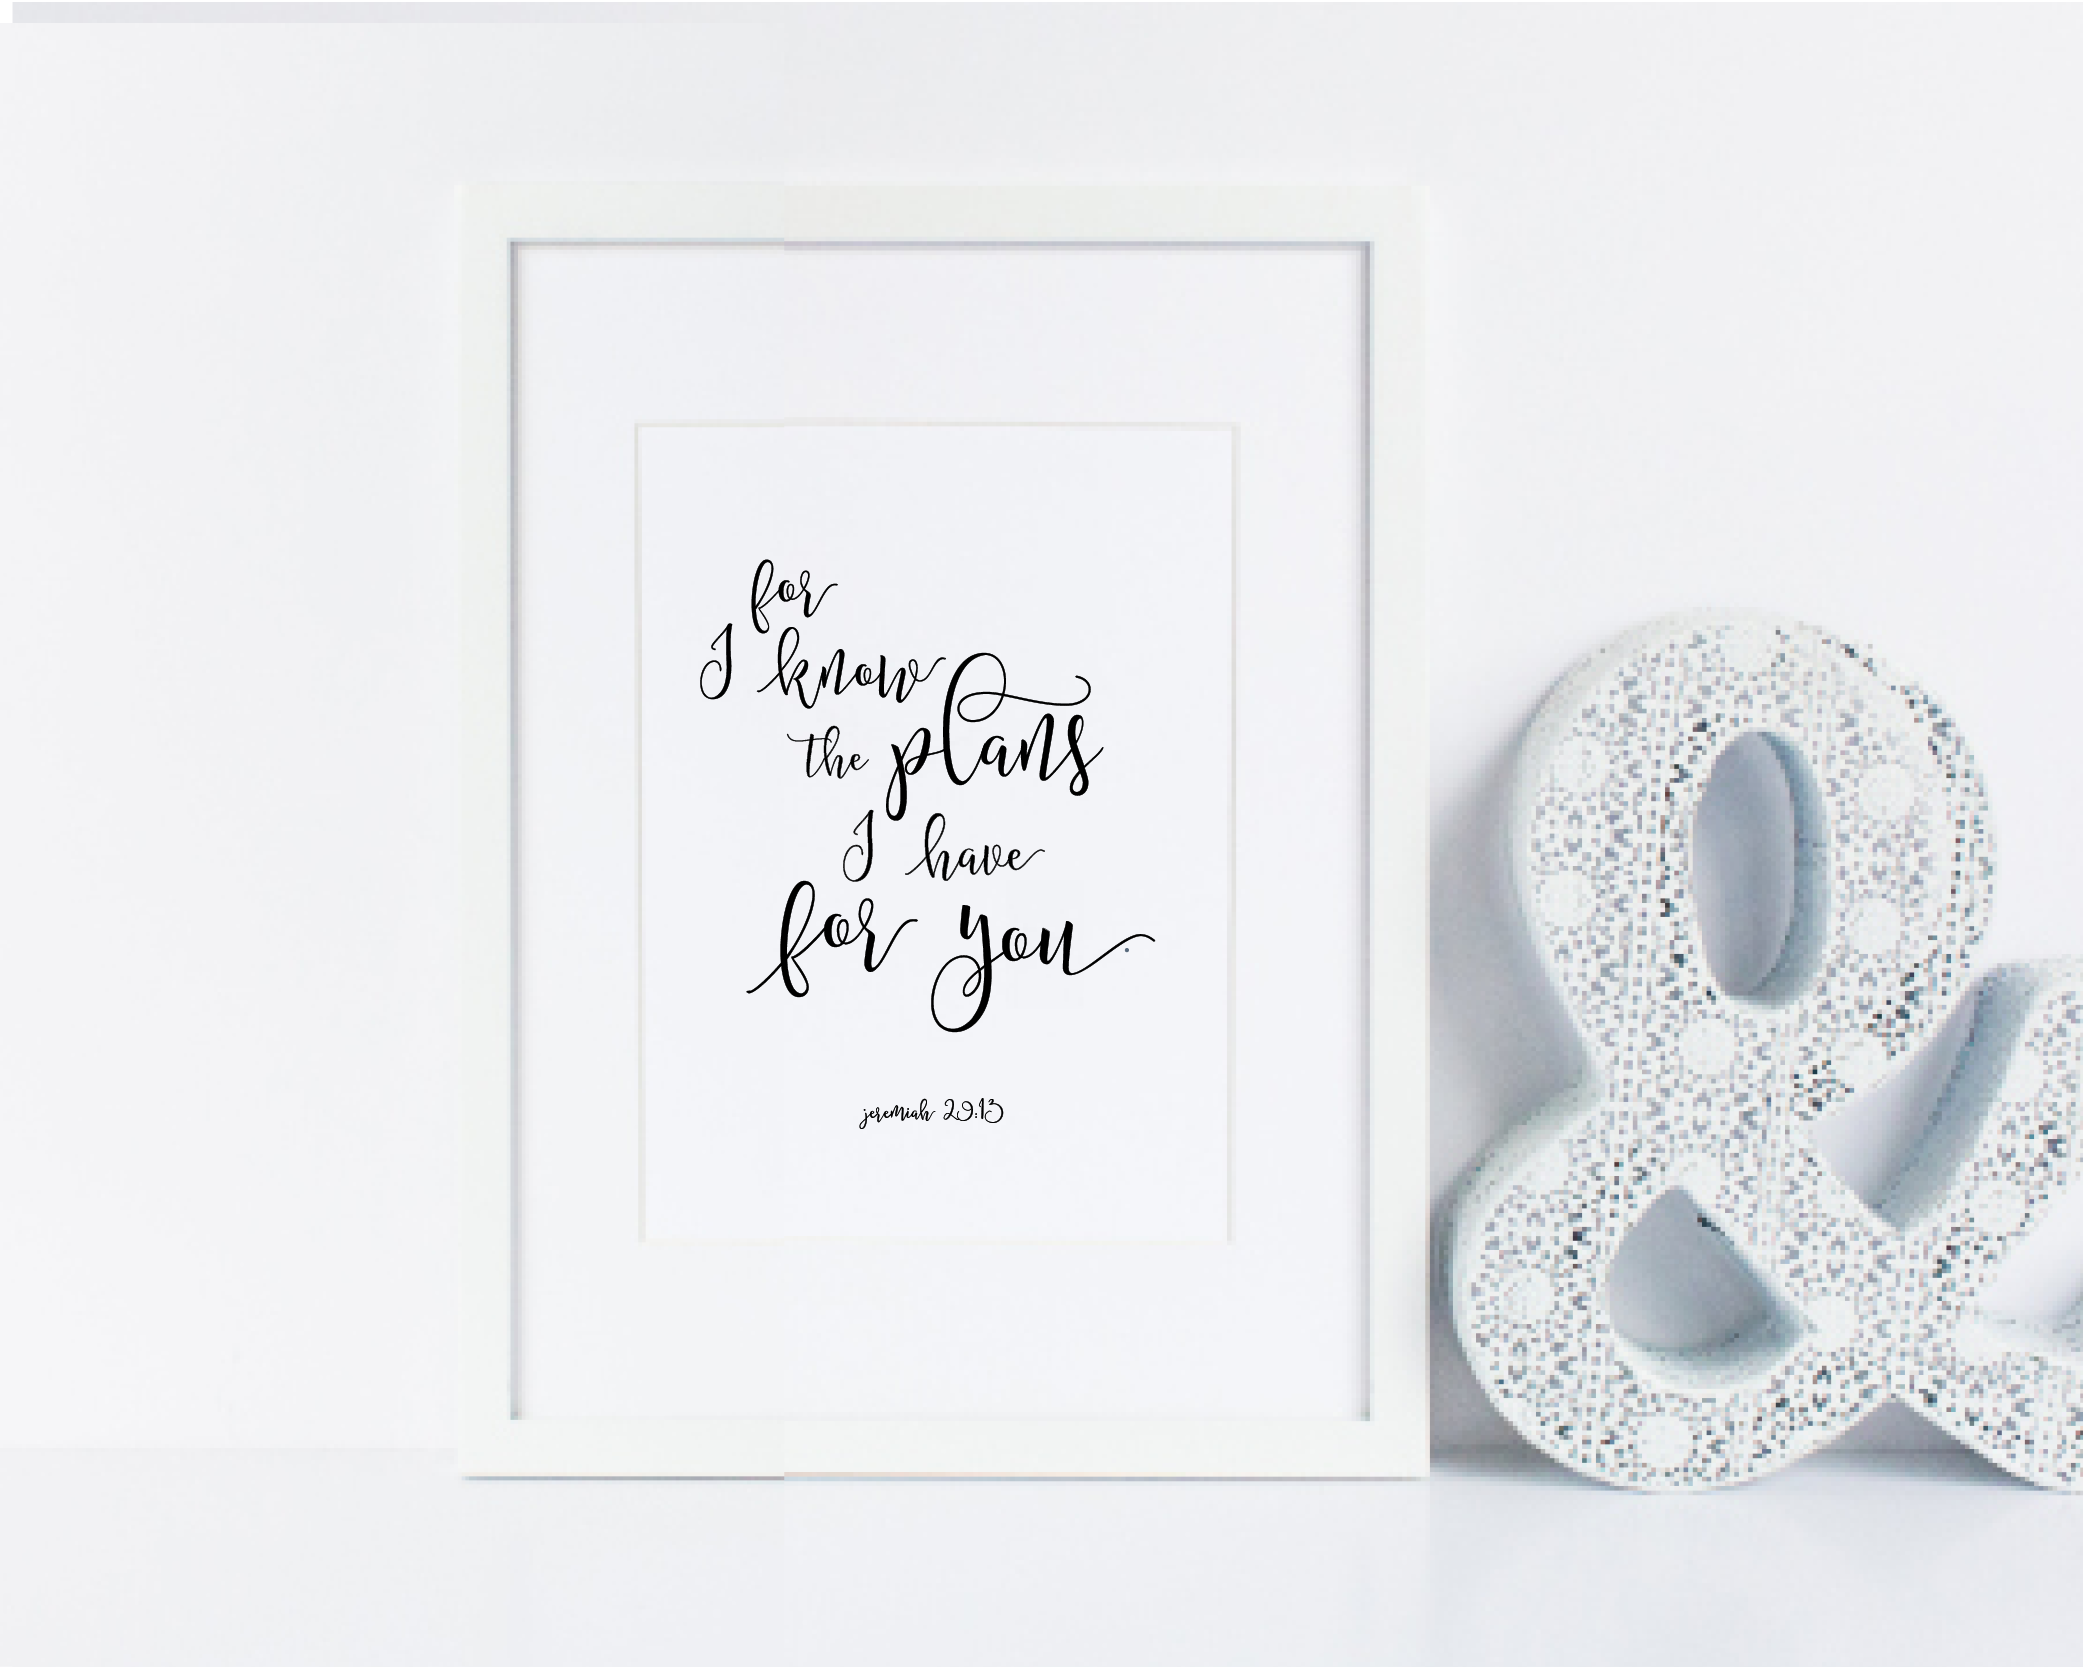 gs-2016-hey-mama-etsy-photos15.png